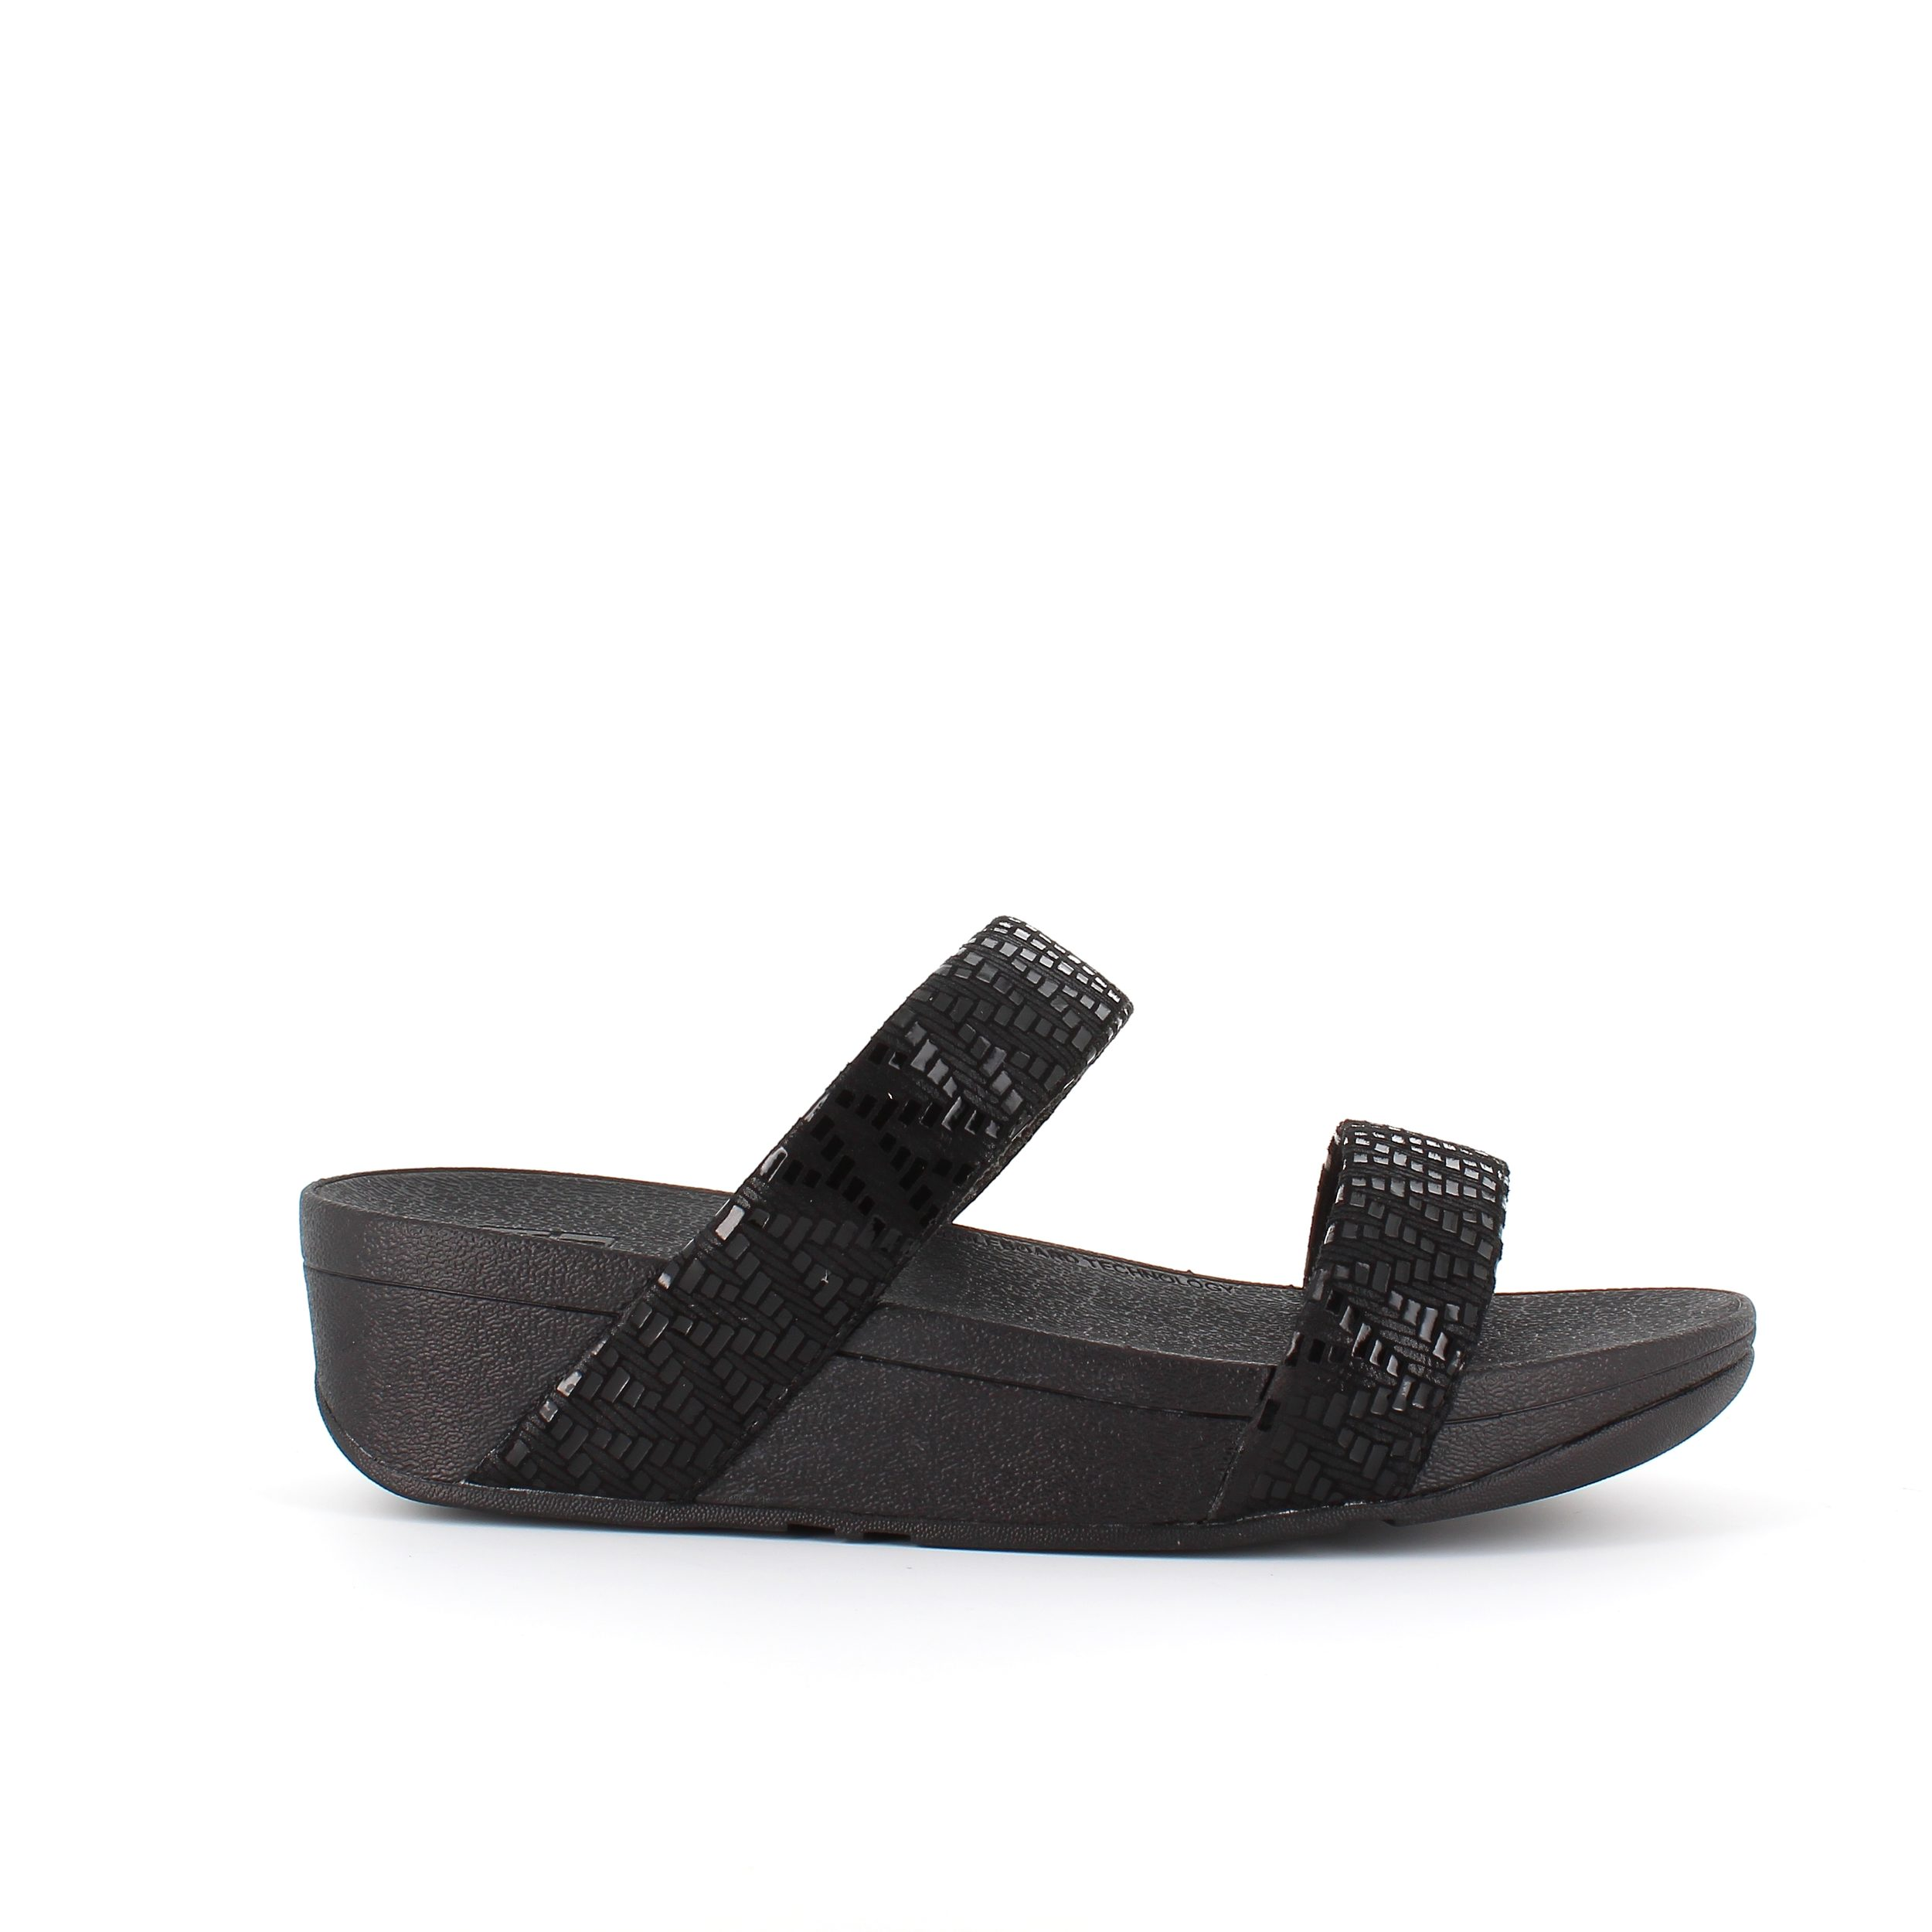 Image of   Lottie Chevron slip in sandal fra Fitflop - 37